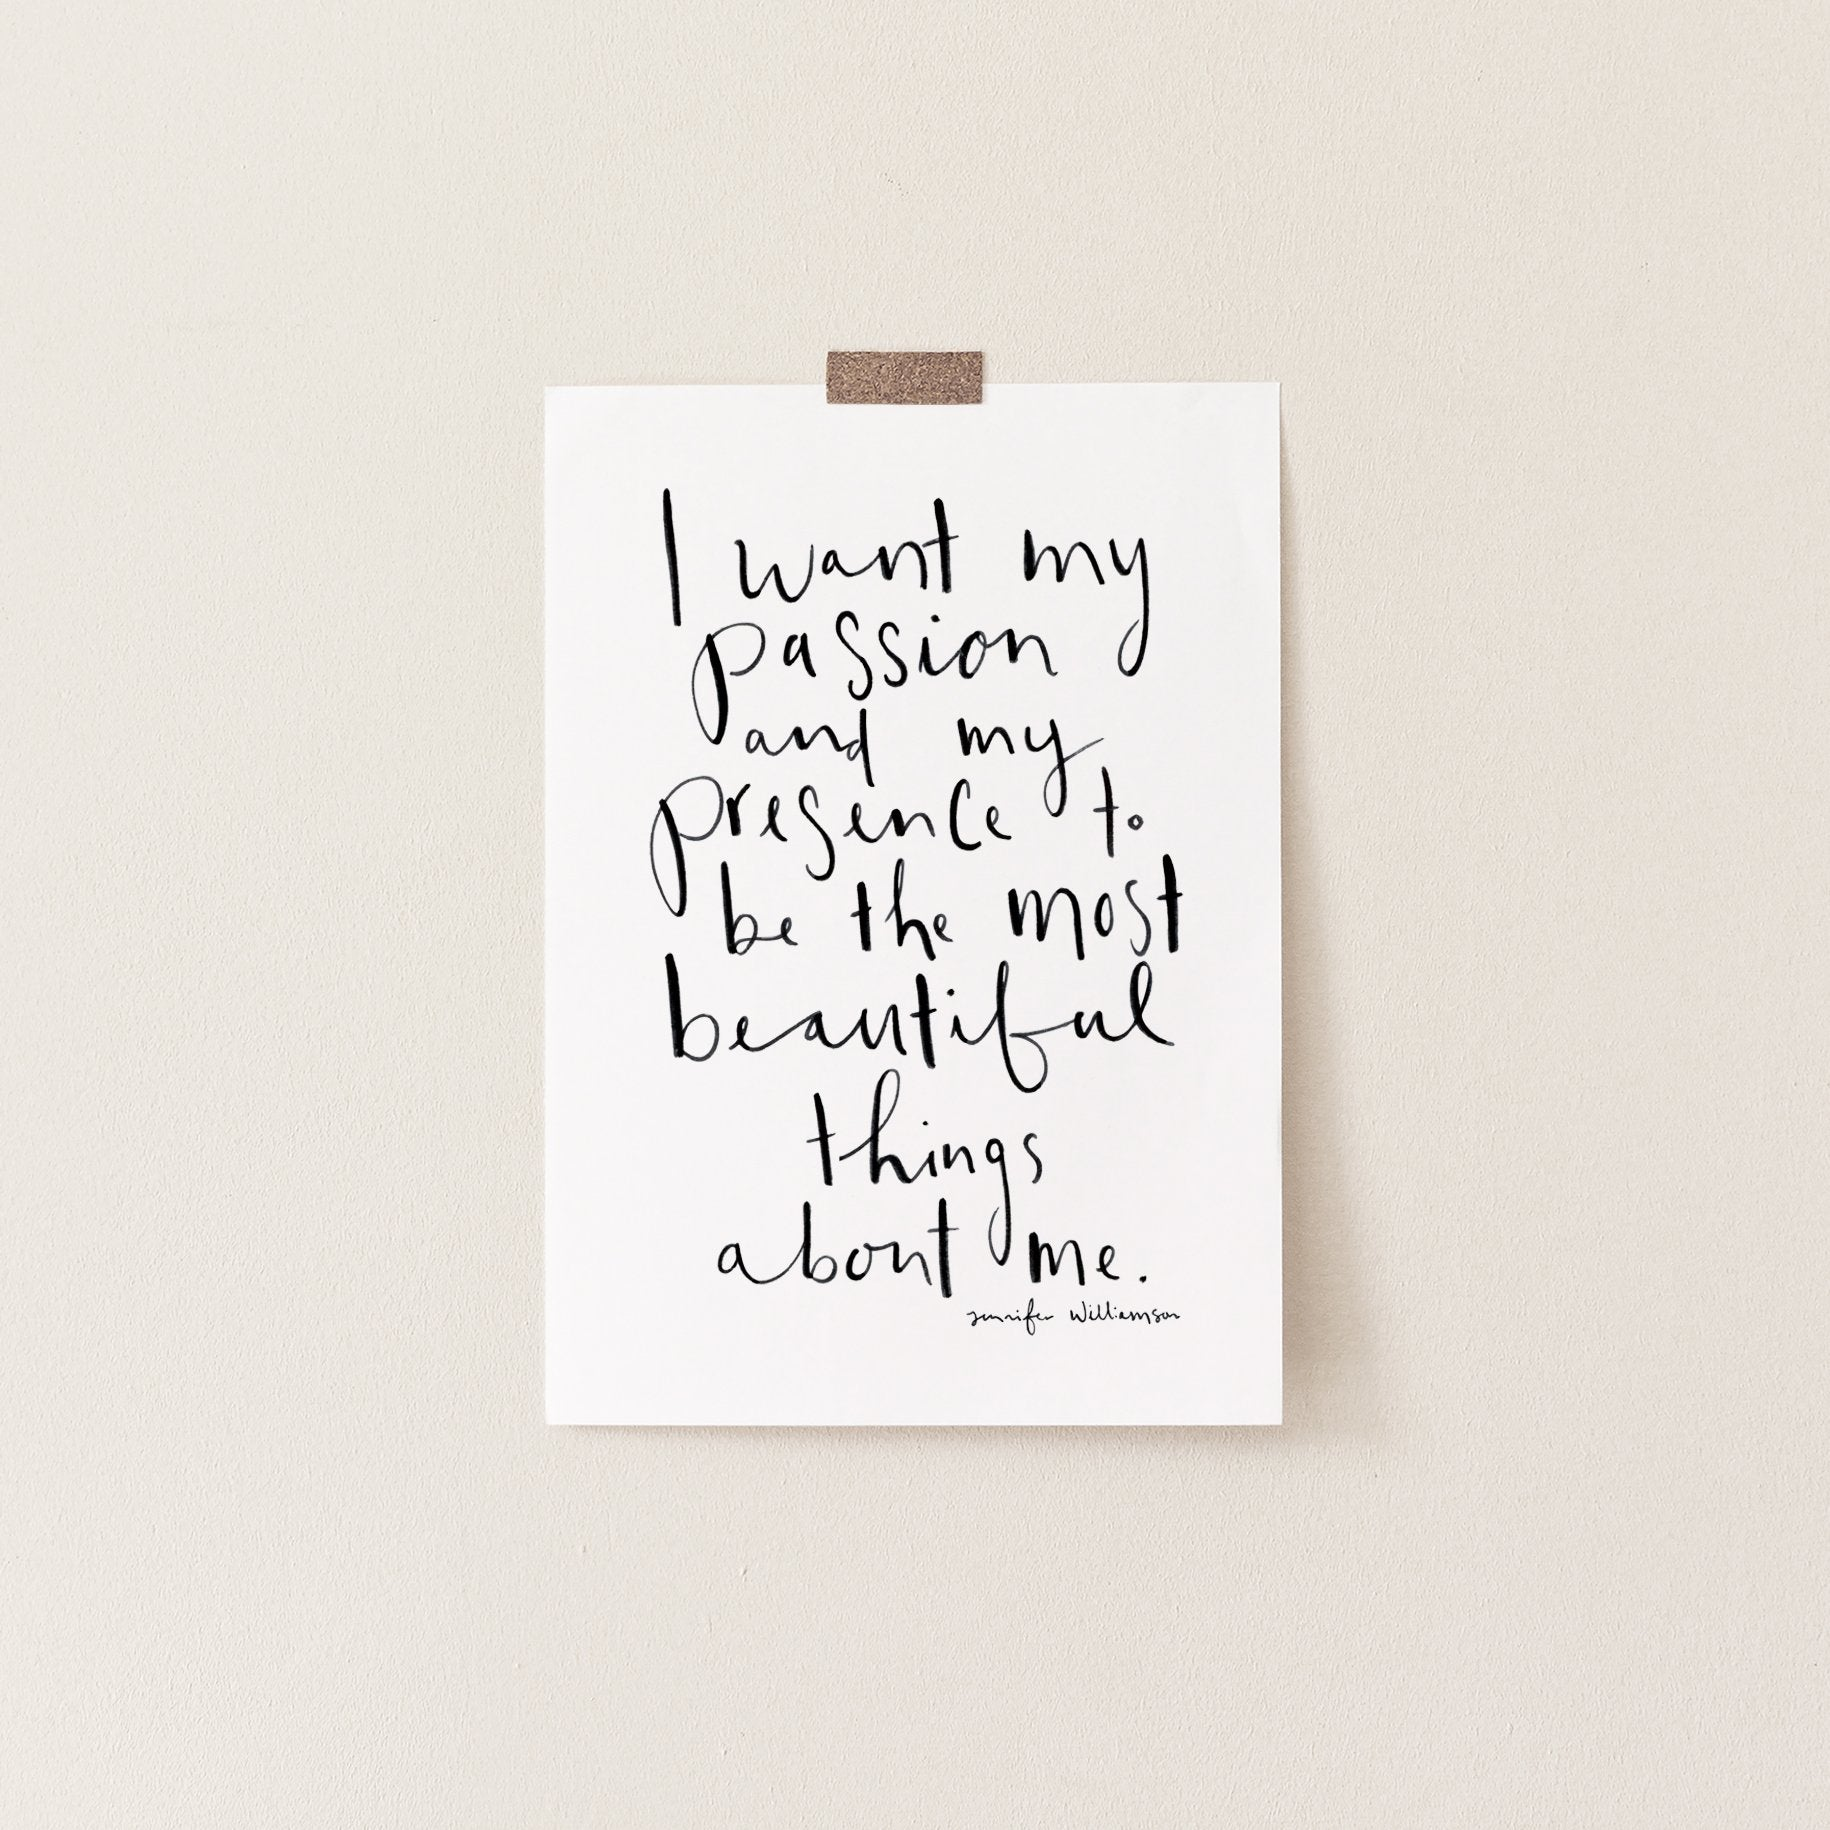 The Most Beautiful Things About Me Hand Lettered Affirmation Art Print